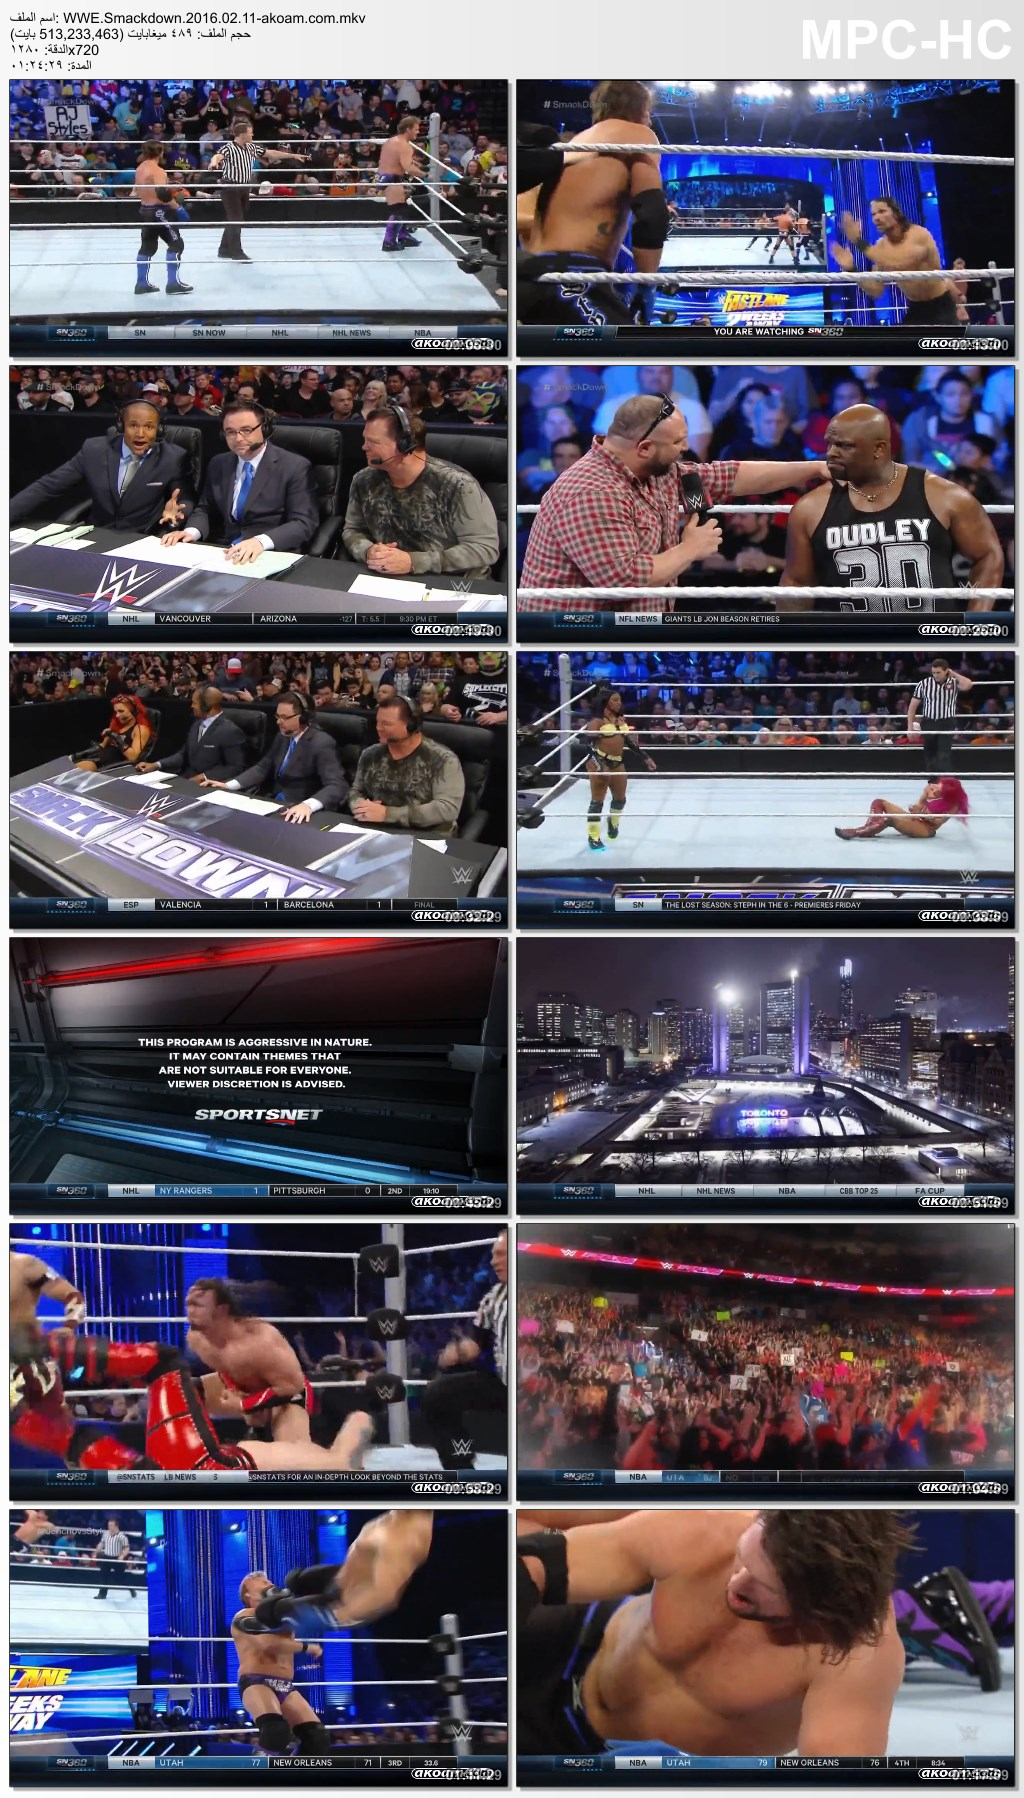 Smackdown,WWE Smackdown,WWE,سماكداون